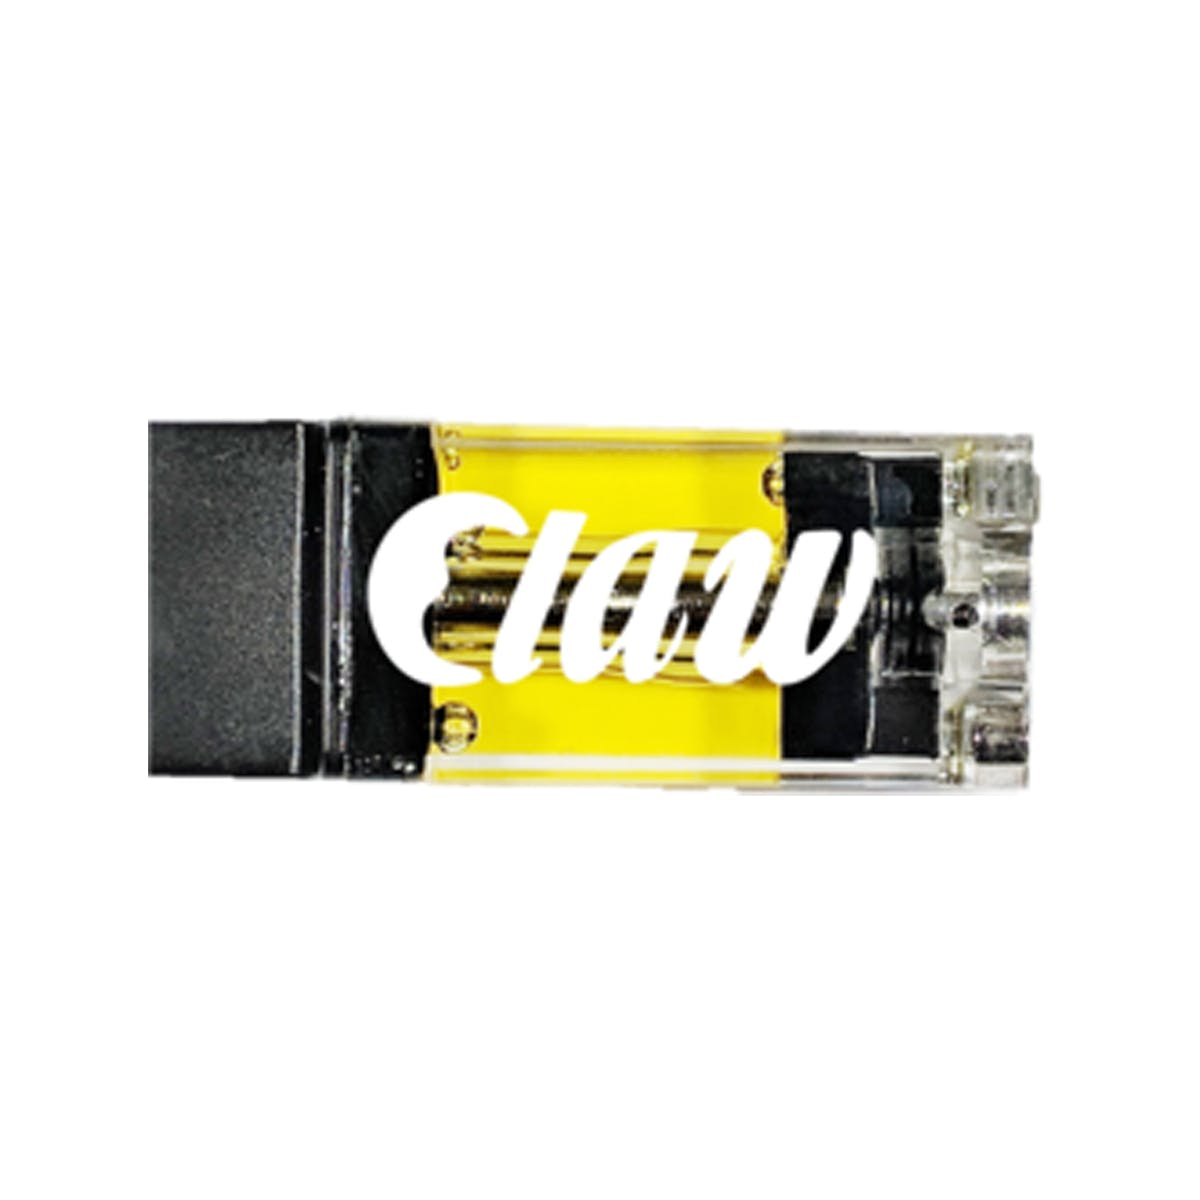 concentrate-claw-concentrates-blueberry-yum-yum-5g-claw-vfire-pod